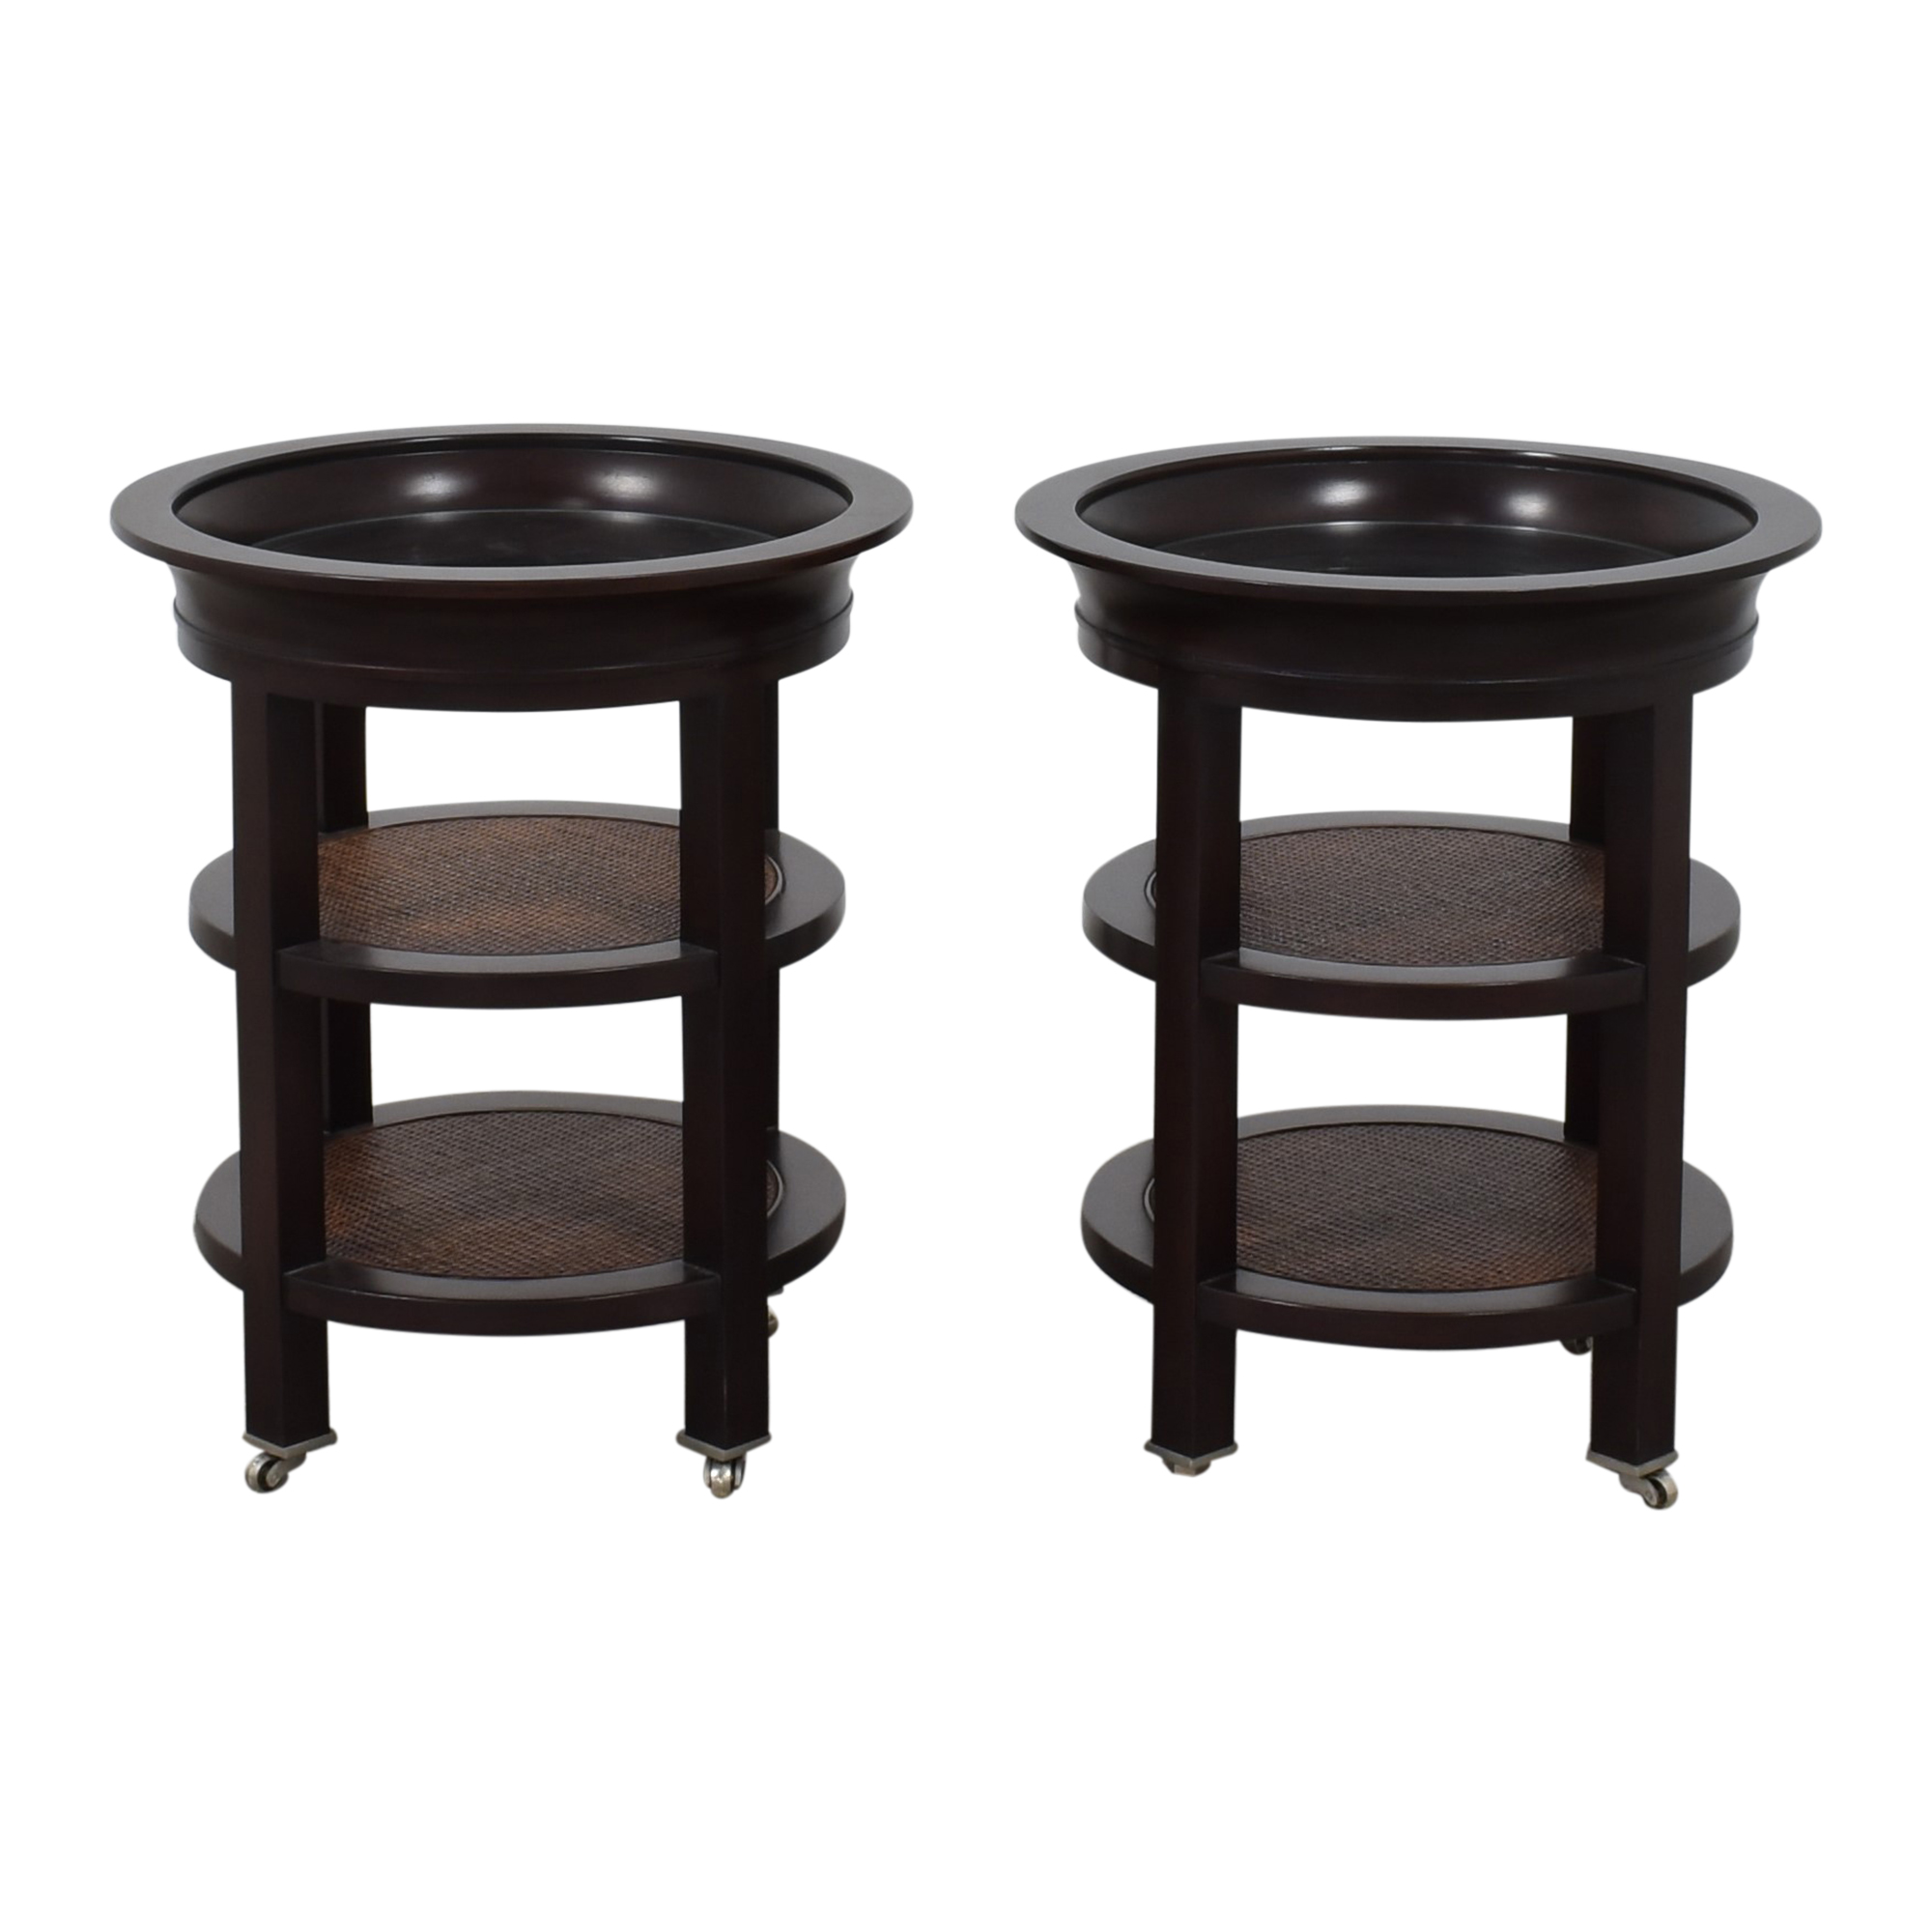 Three Tier Round Side Tables discount